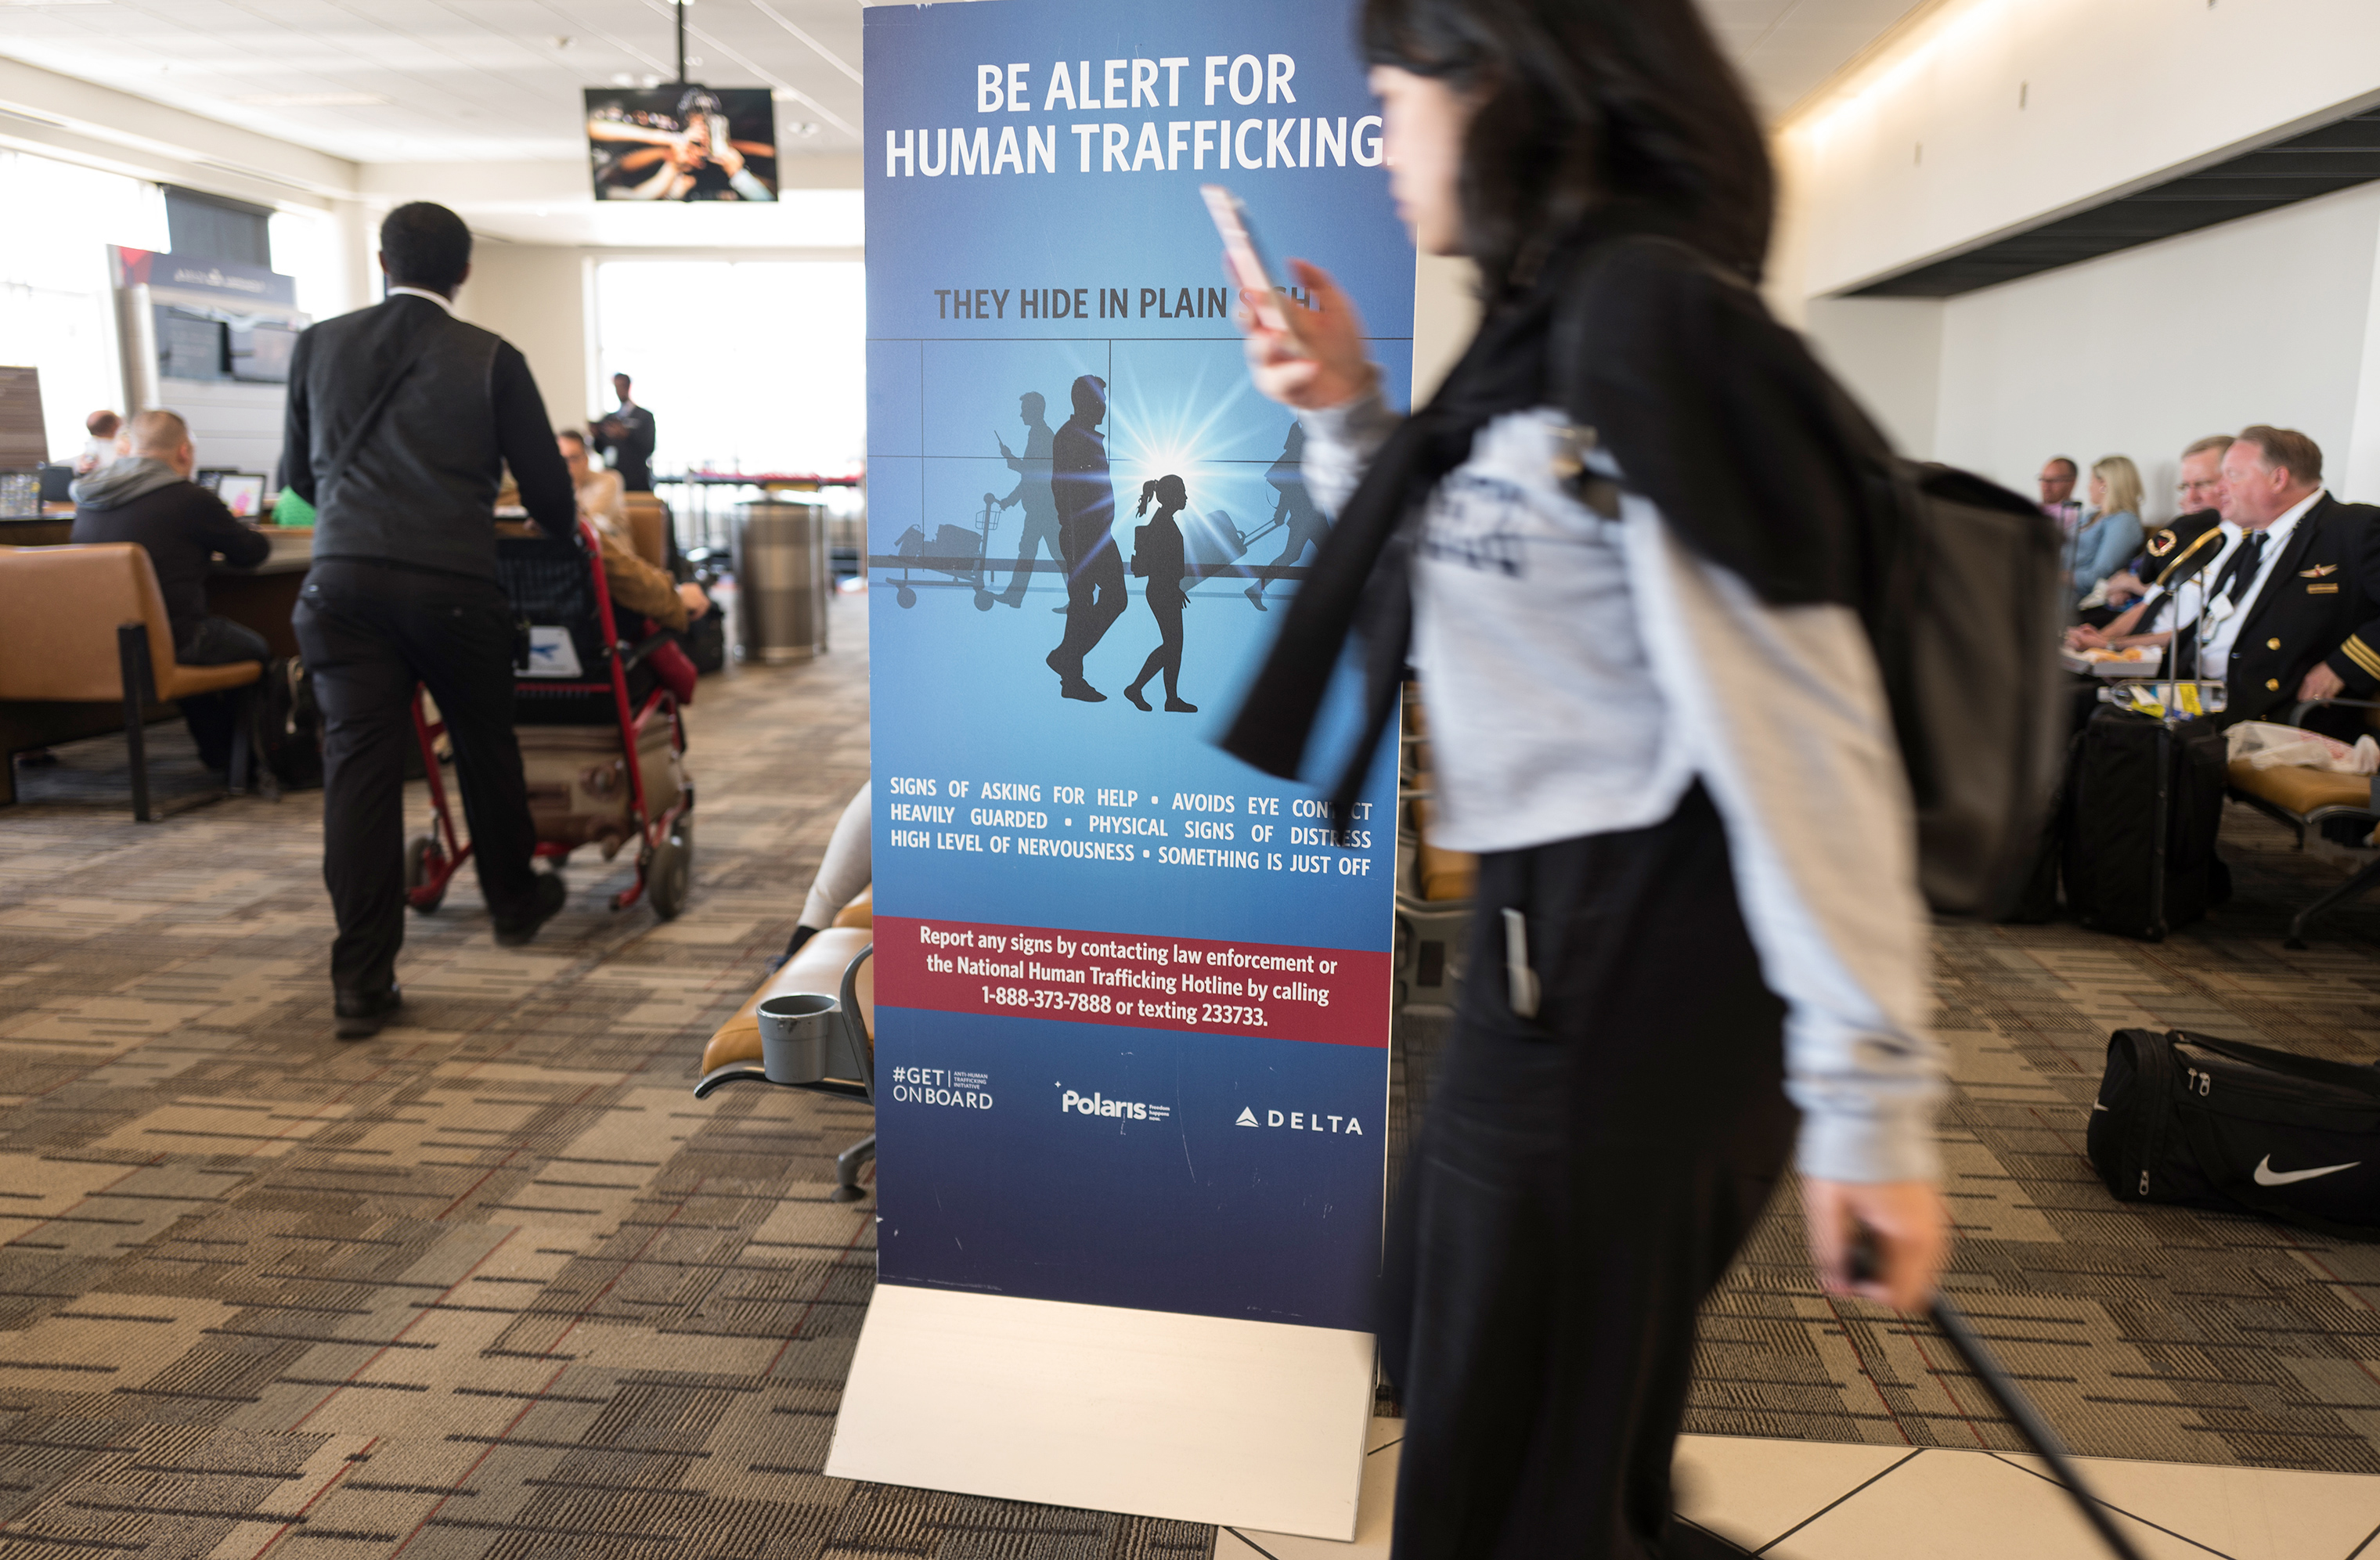 A human trafficking awareness sign in the airport in Minneapolis, MN, April 26, 2018.